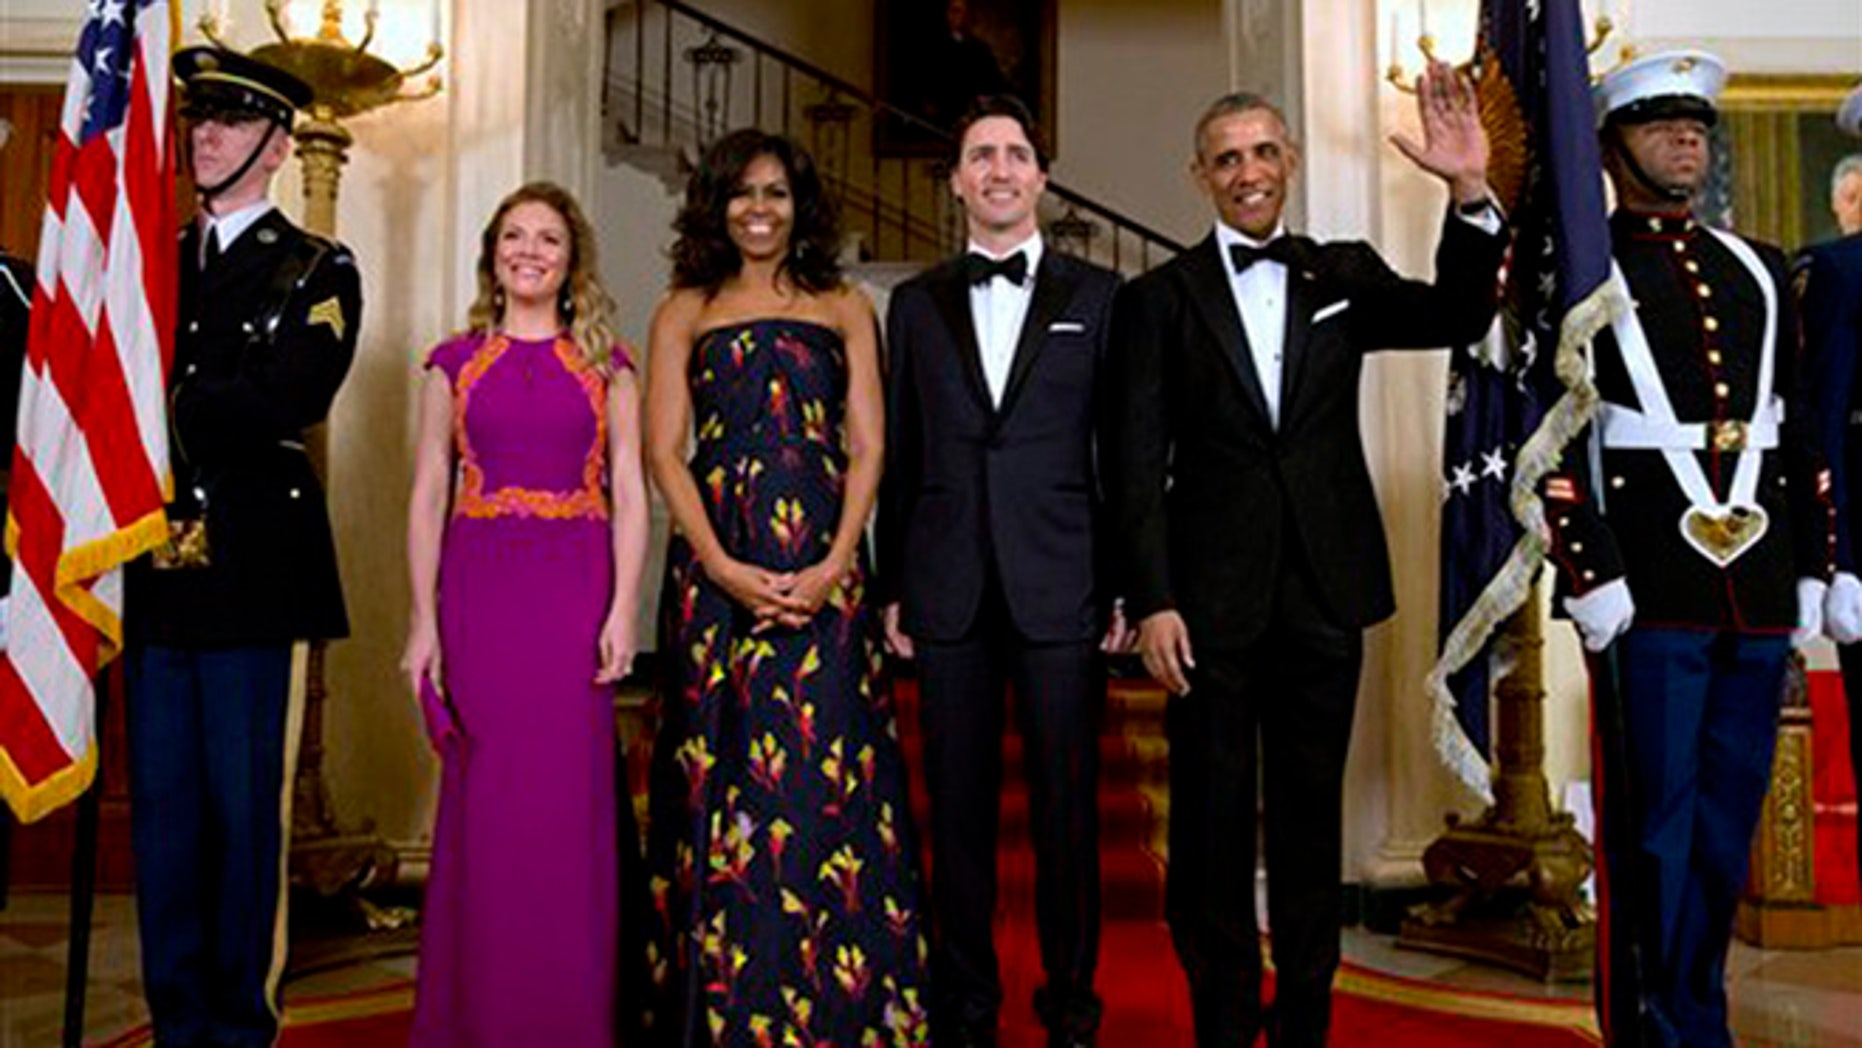 President Barack Obama, right, waves with from left, Sophie Grégoire Trudeau, first lady Michelle Obama, and Canadian Prime Minister Justin Trudeau, as they pose for a photograph at the White House during the State Dinner in Washington, Thursday, March 10, 2016. (AP Photo/Jacquelyn Martin)